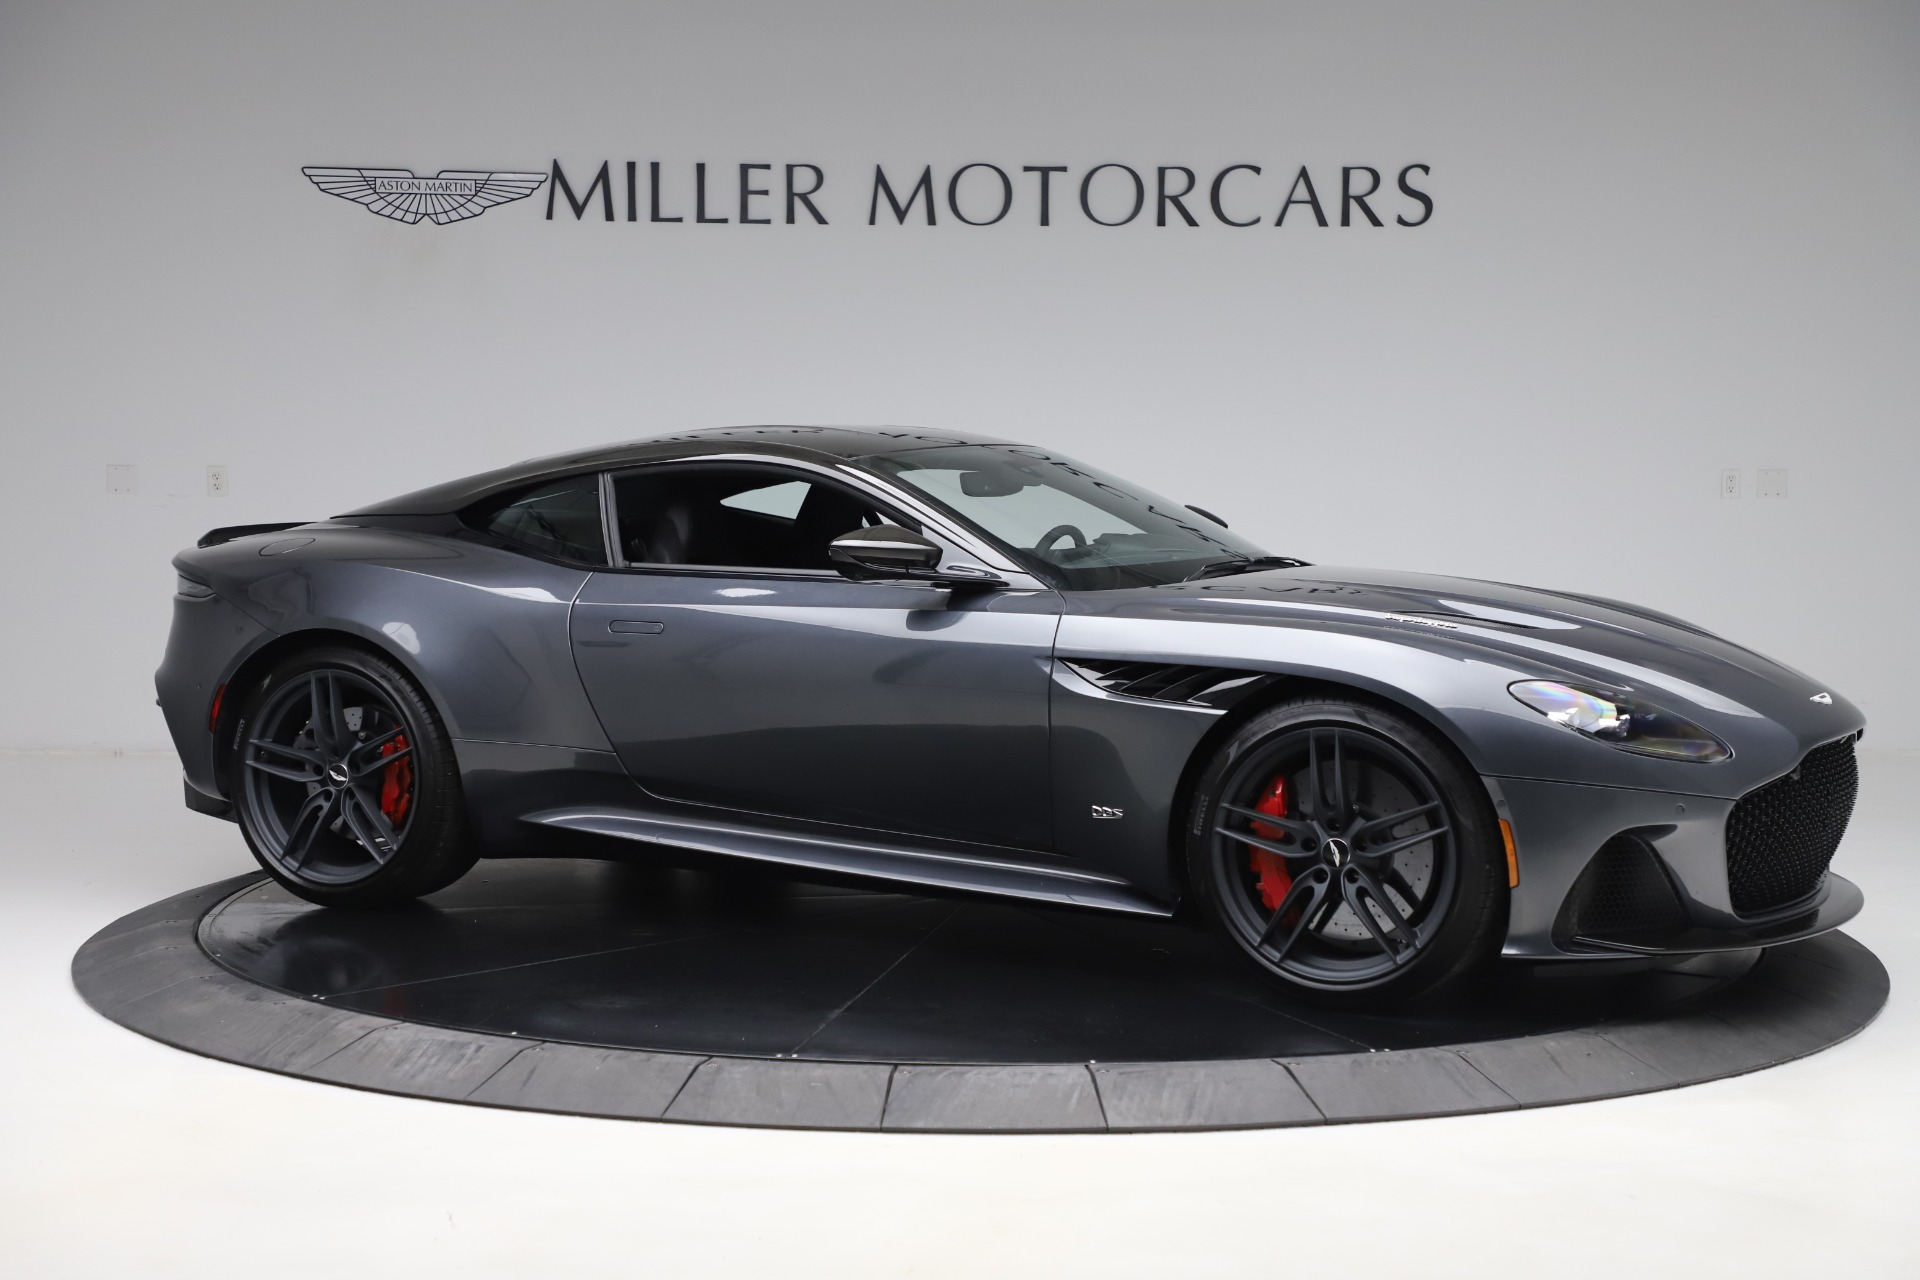 Used 2019 Aston Martin DBS Superleggera For Sale In Greenwich, CT 3570_p10